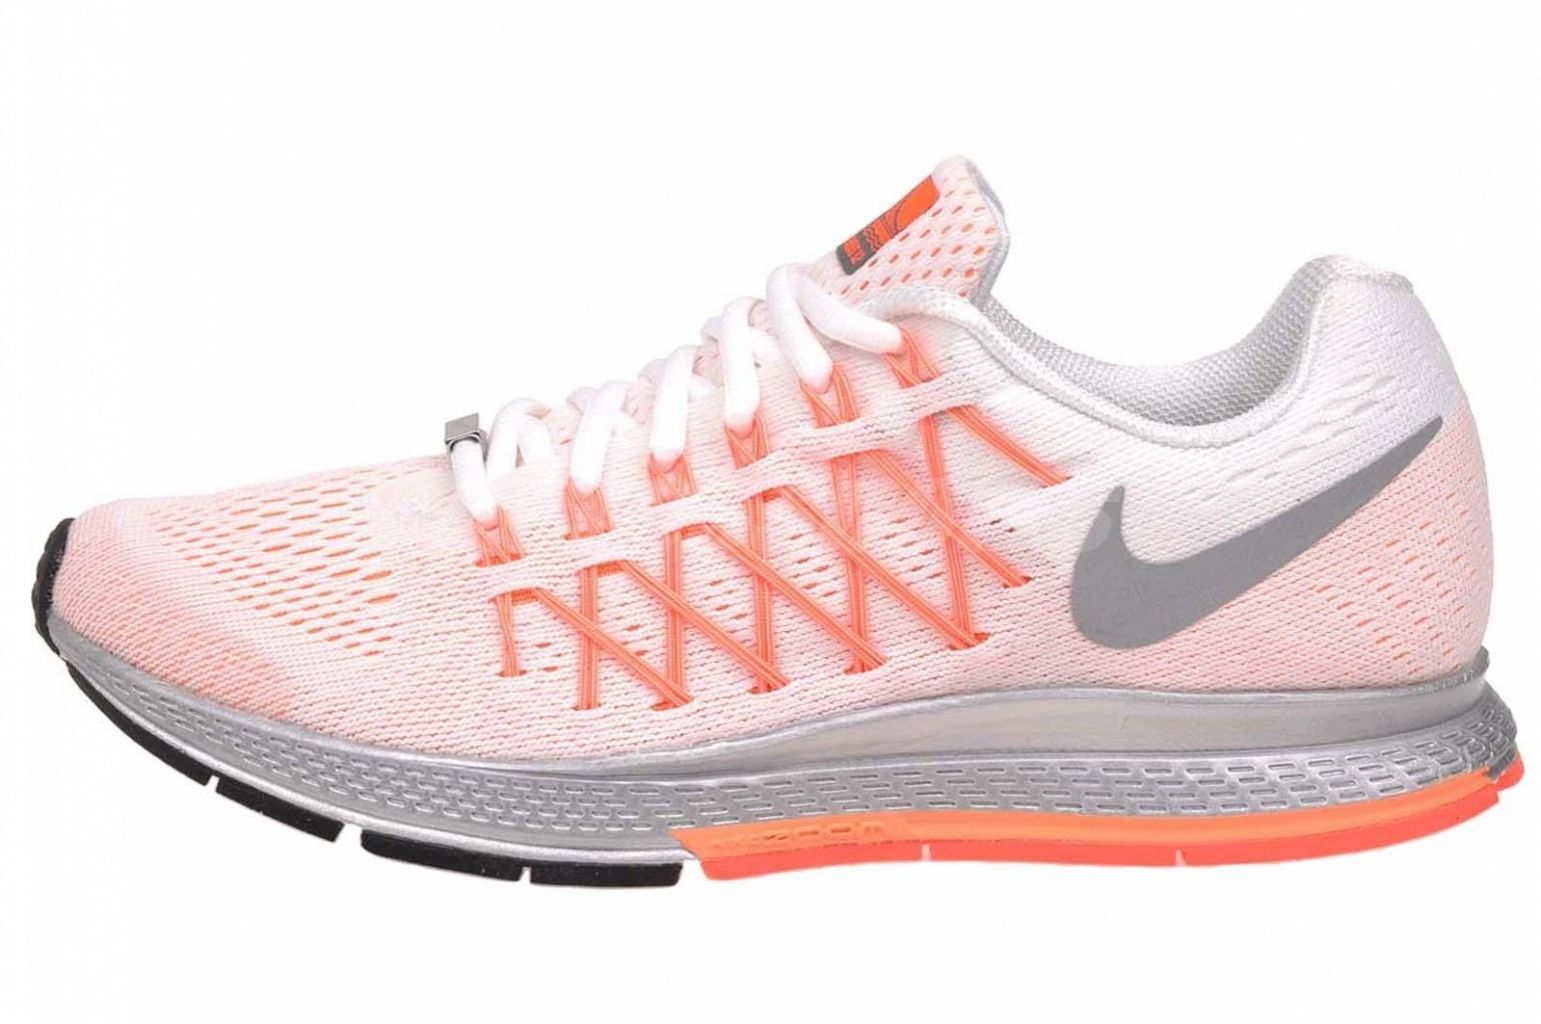 8961a1f410662 ... best price buy nike air zoom pegasus 32 white orange in pakistan  affordable.pk 531b6